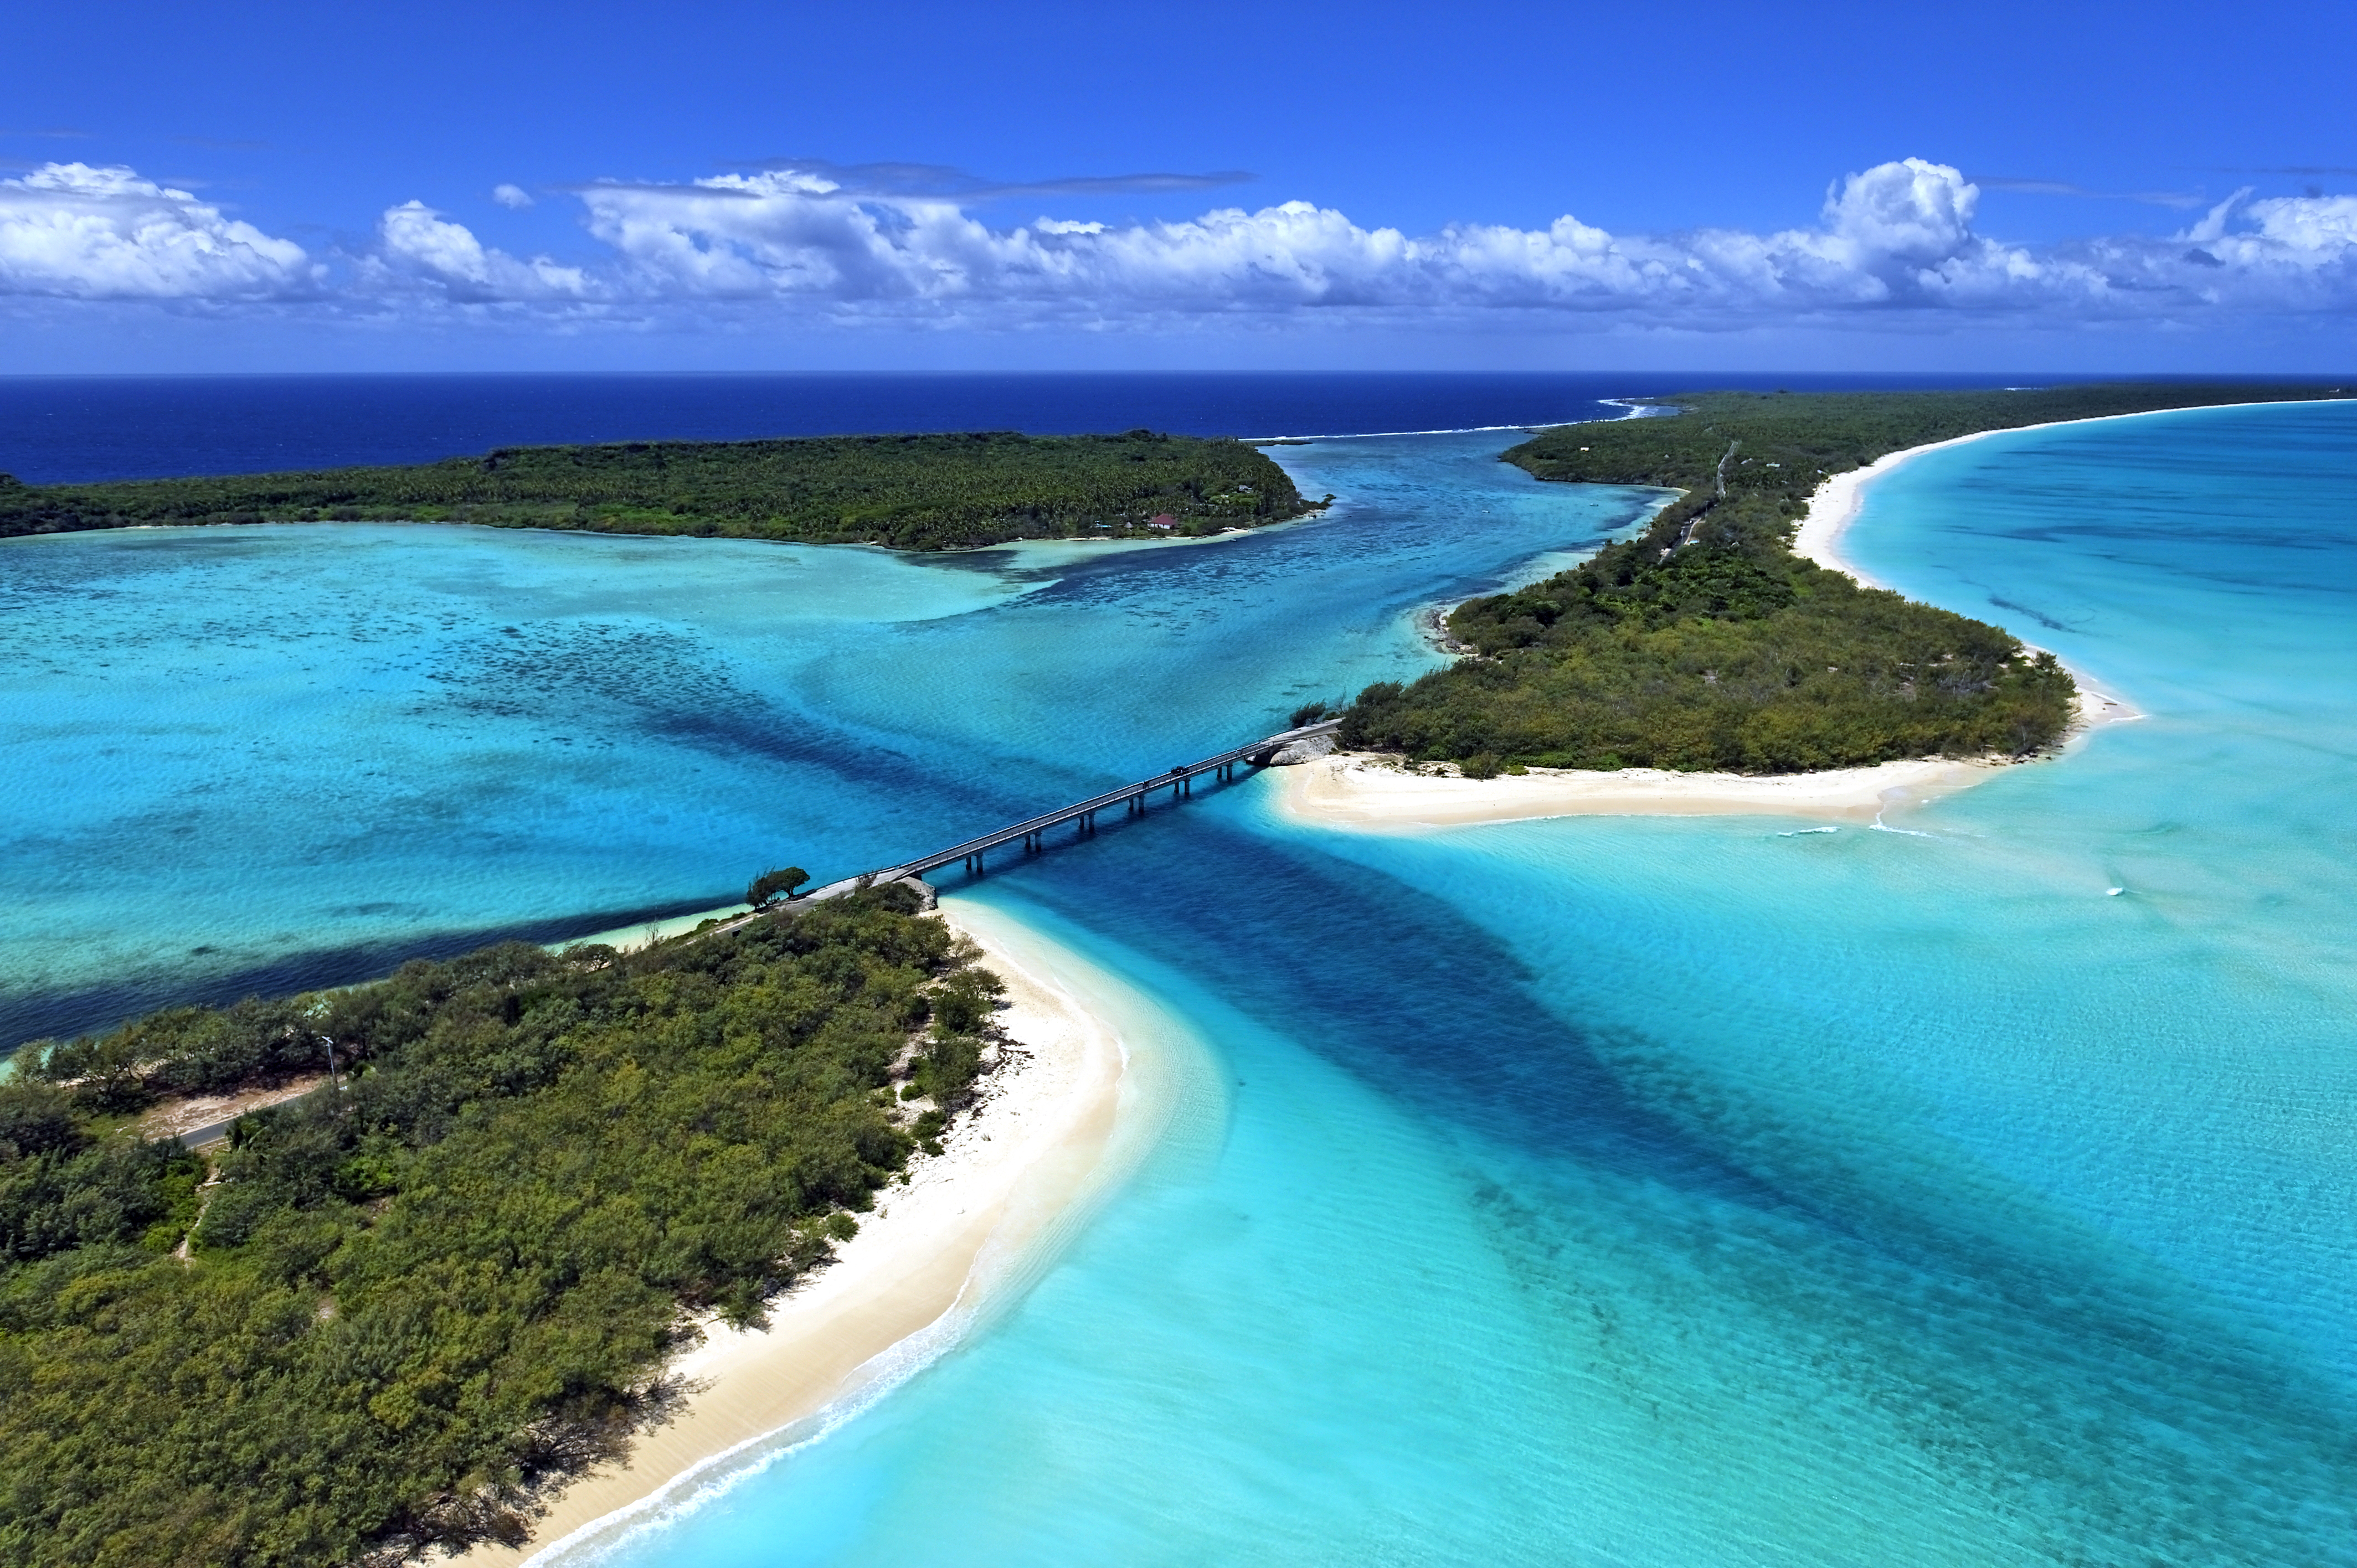 New caledonia tourism the islands of wonder for The caledonia